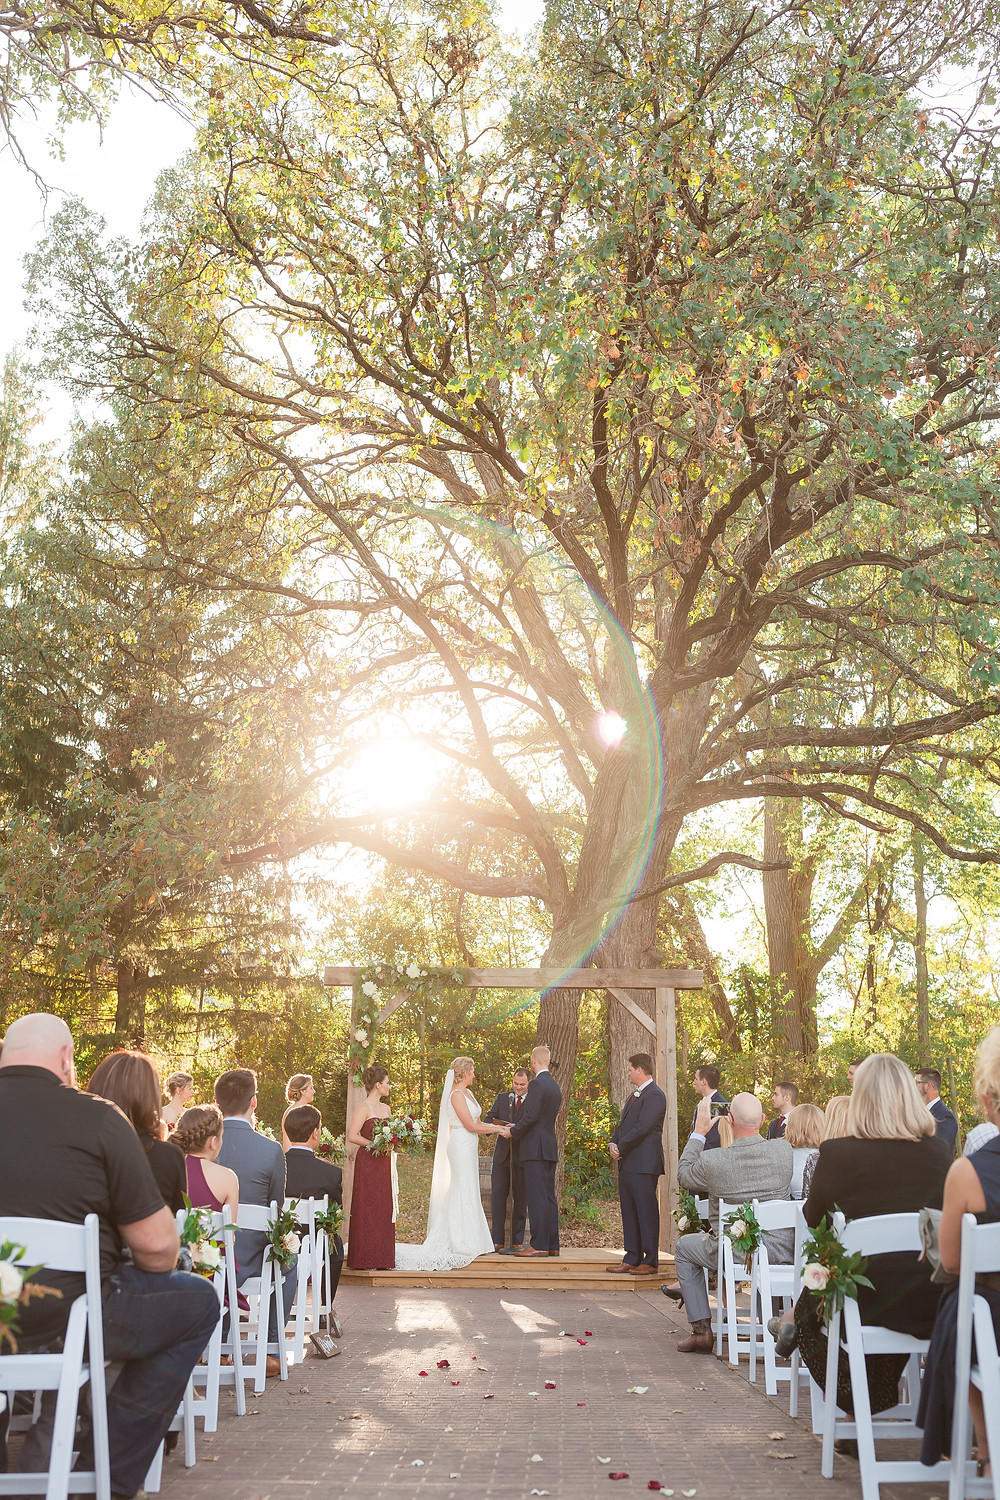 Bride and groom at outdoor wedding ceremony at rapid creek cidery in iowa city